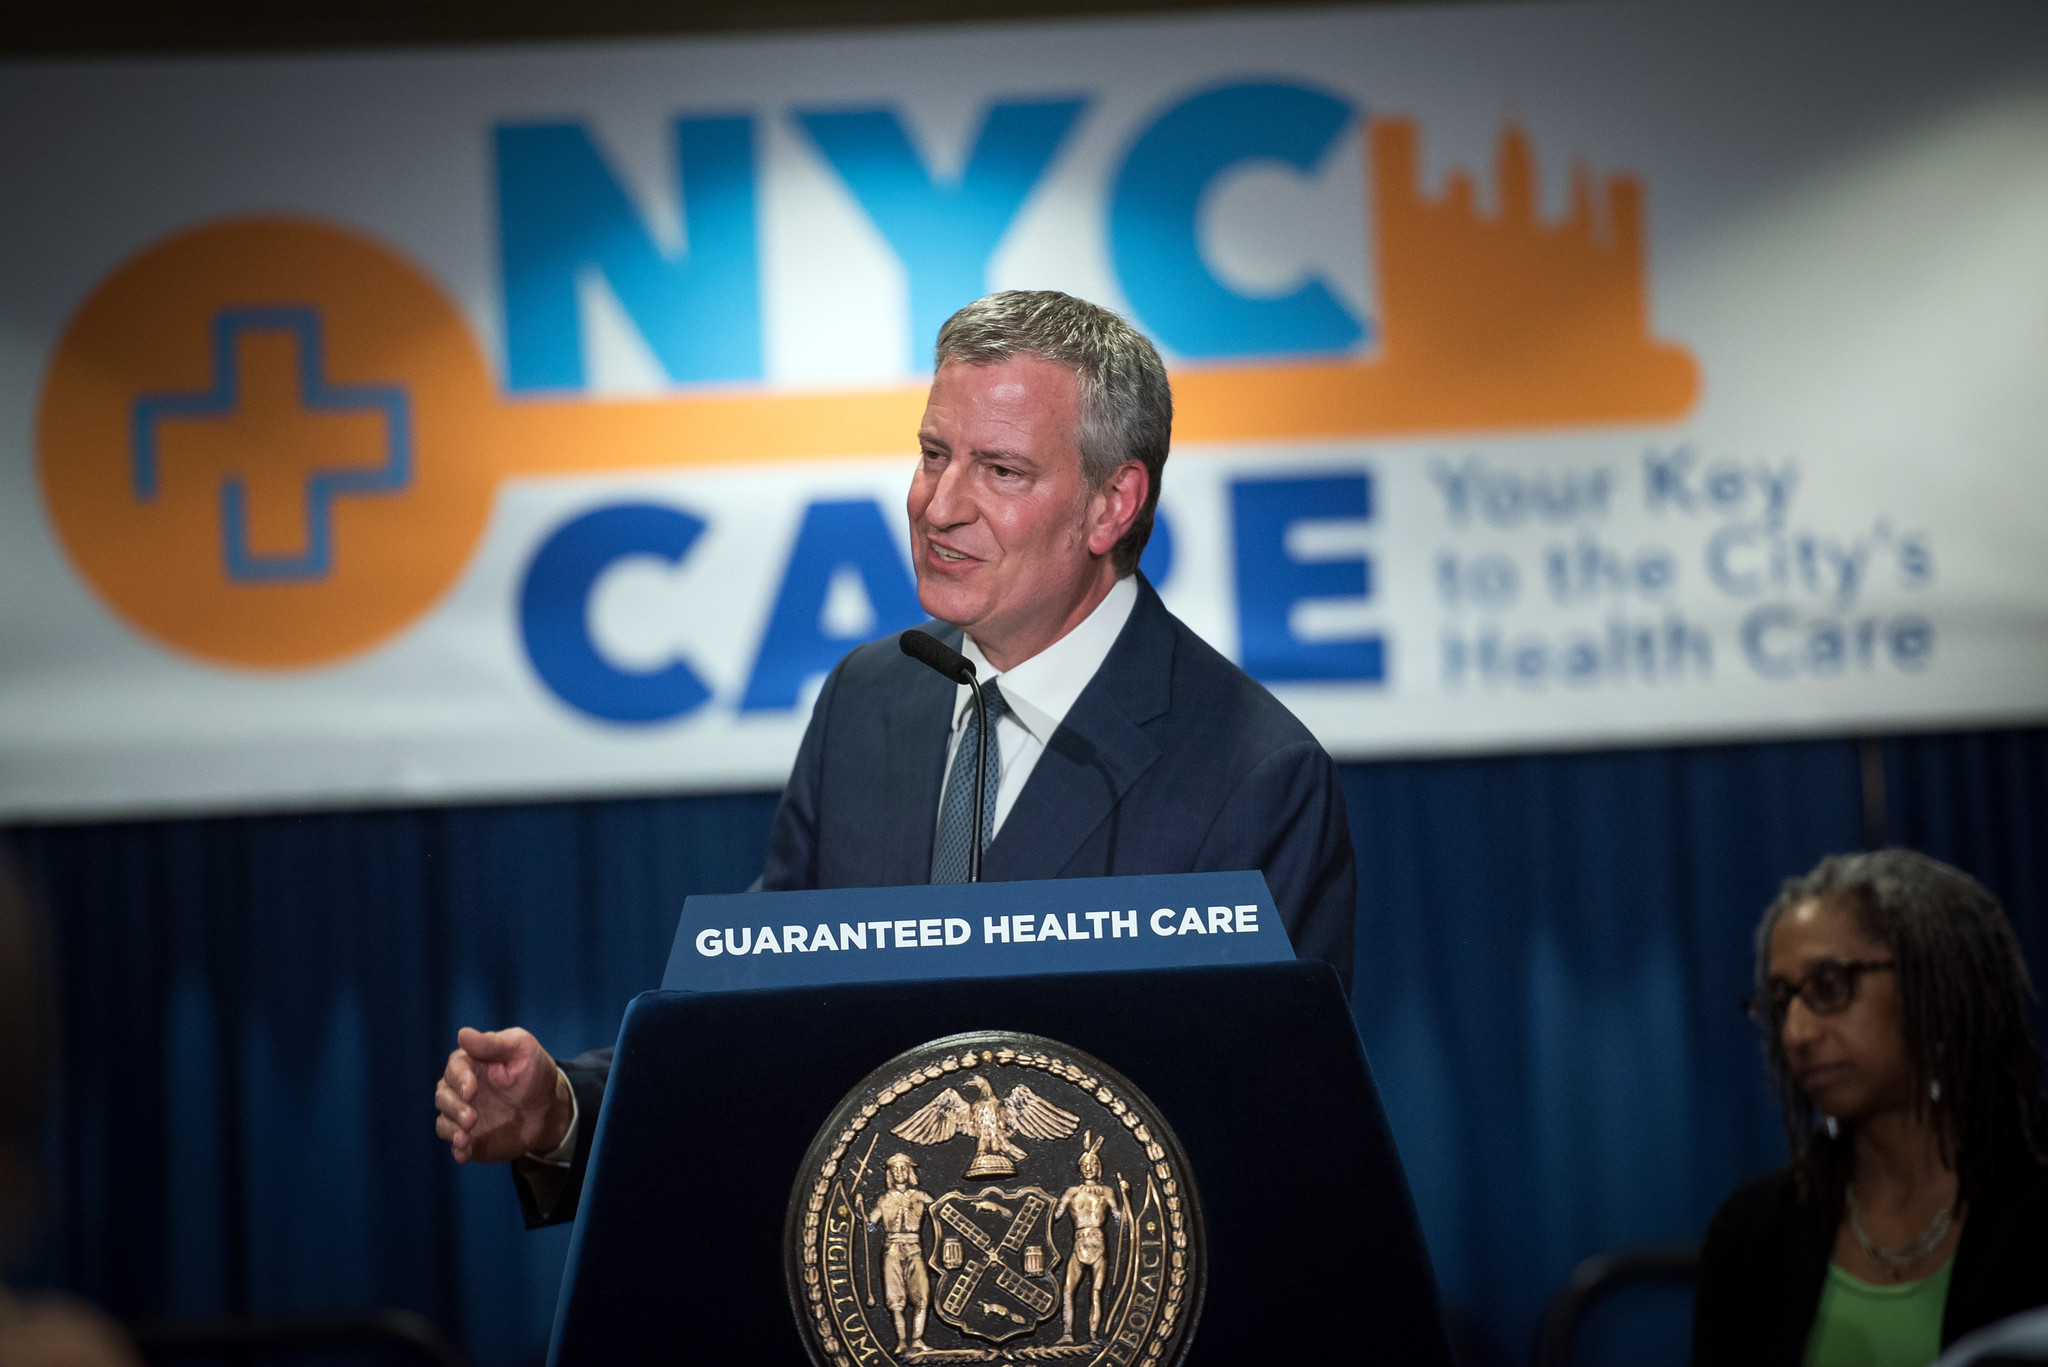 More than 10,000 Bronx residents enrolled in Mayor de Blasio's NYC Care health coverage card